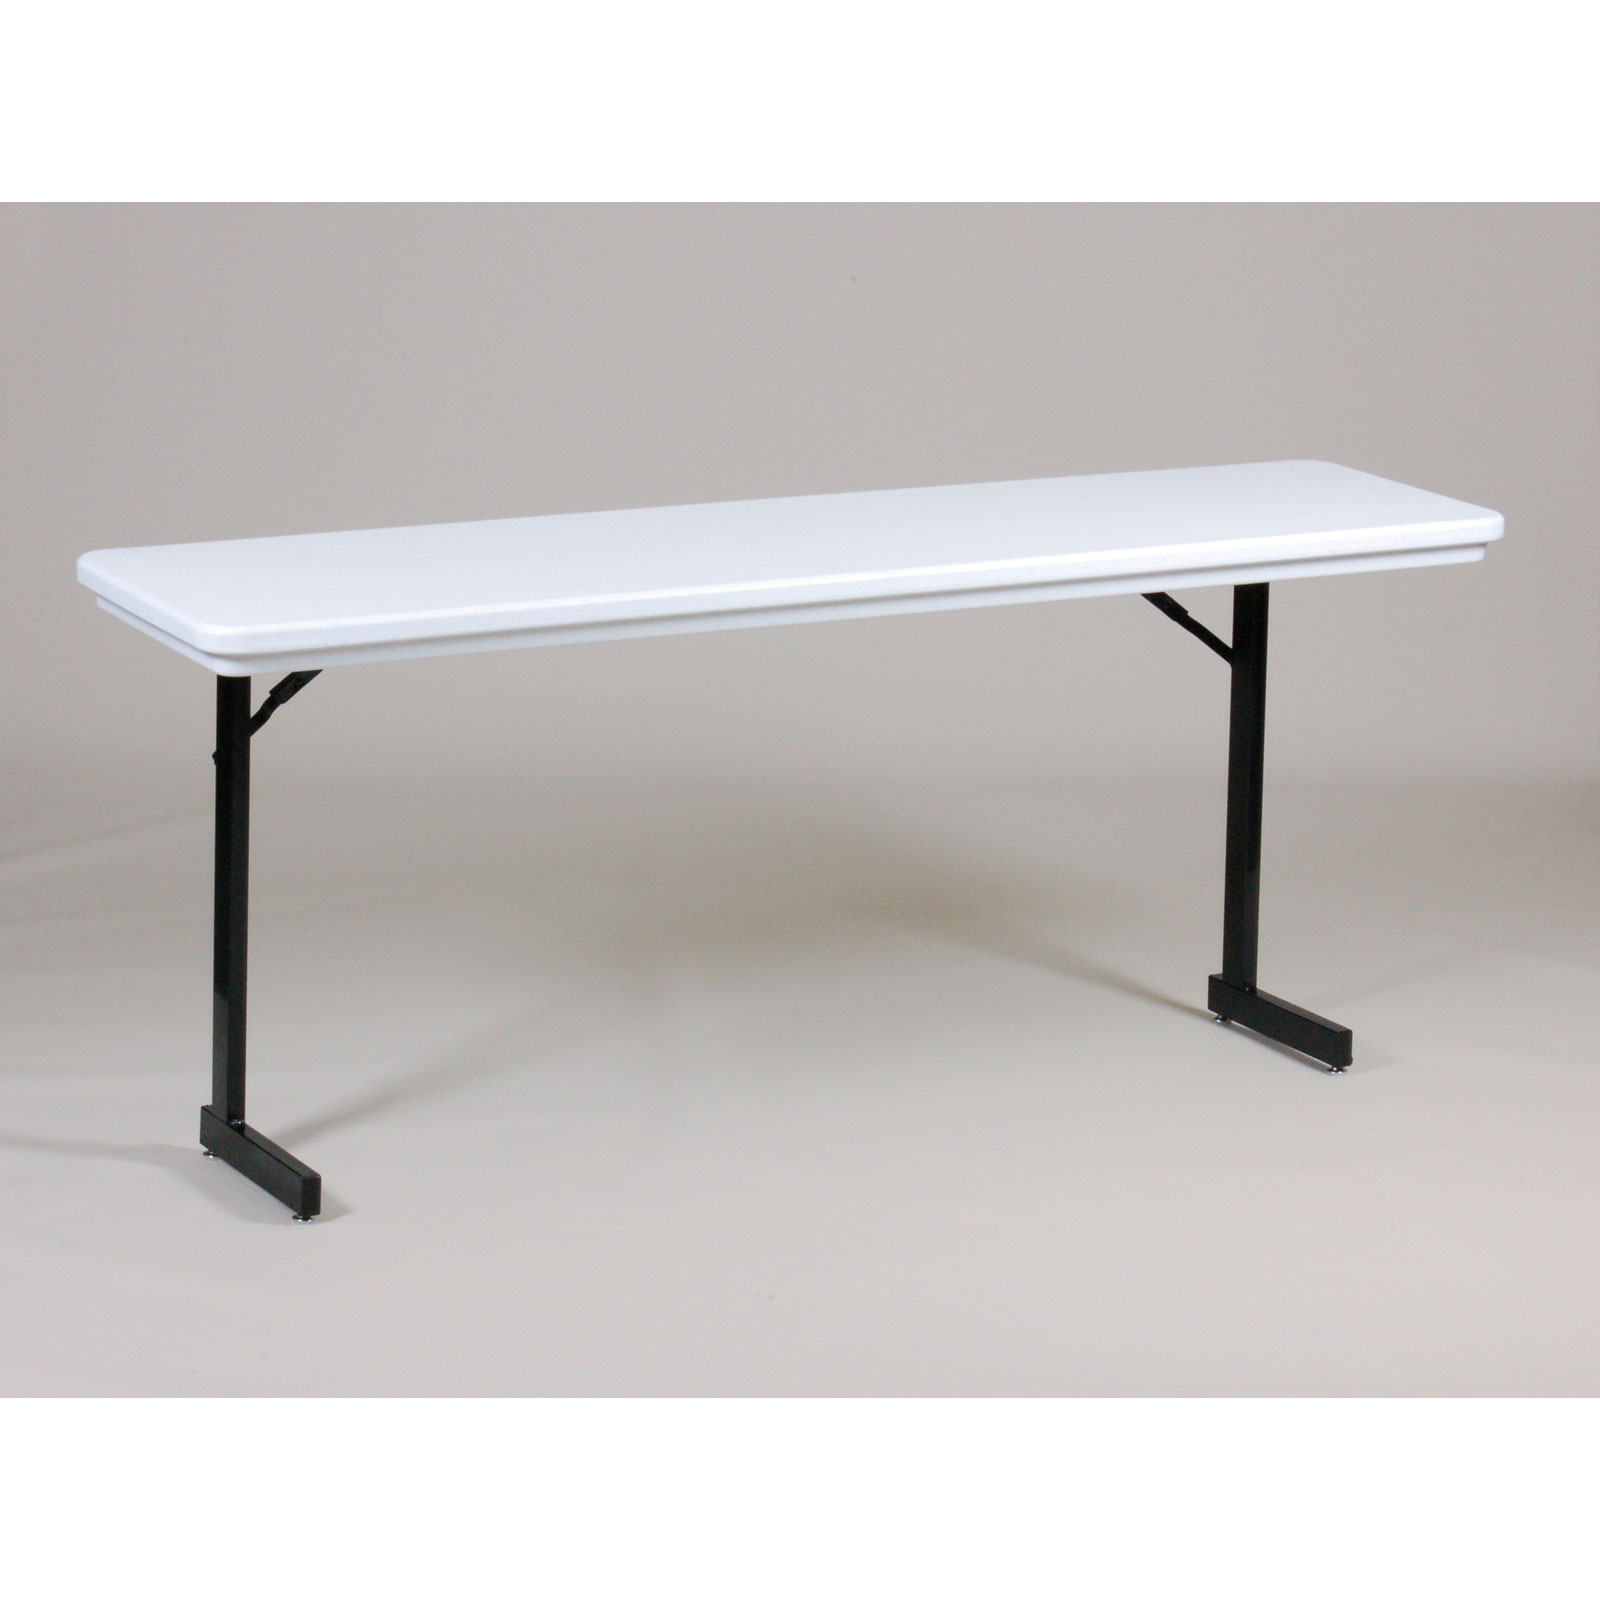 18x72 T Leg Folding Seminar Table By Correll In Folding Tables